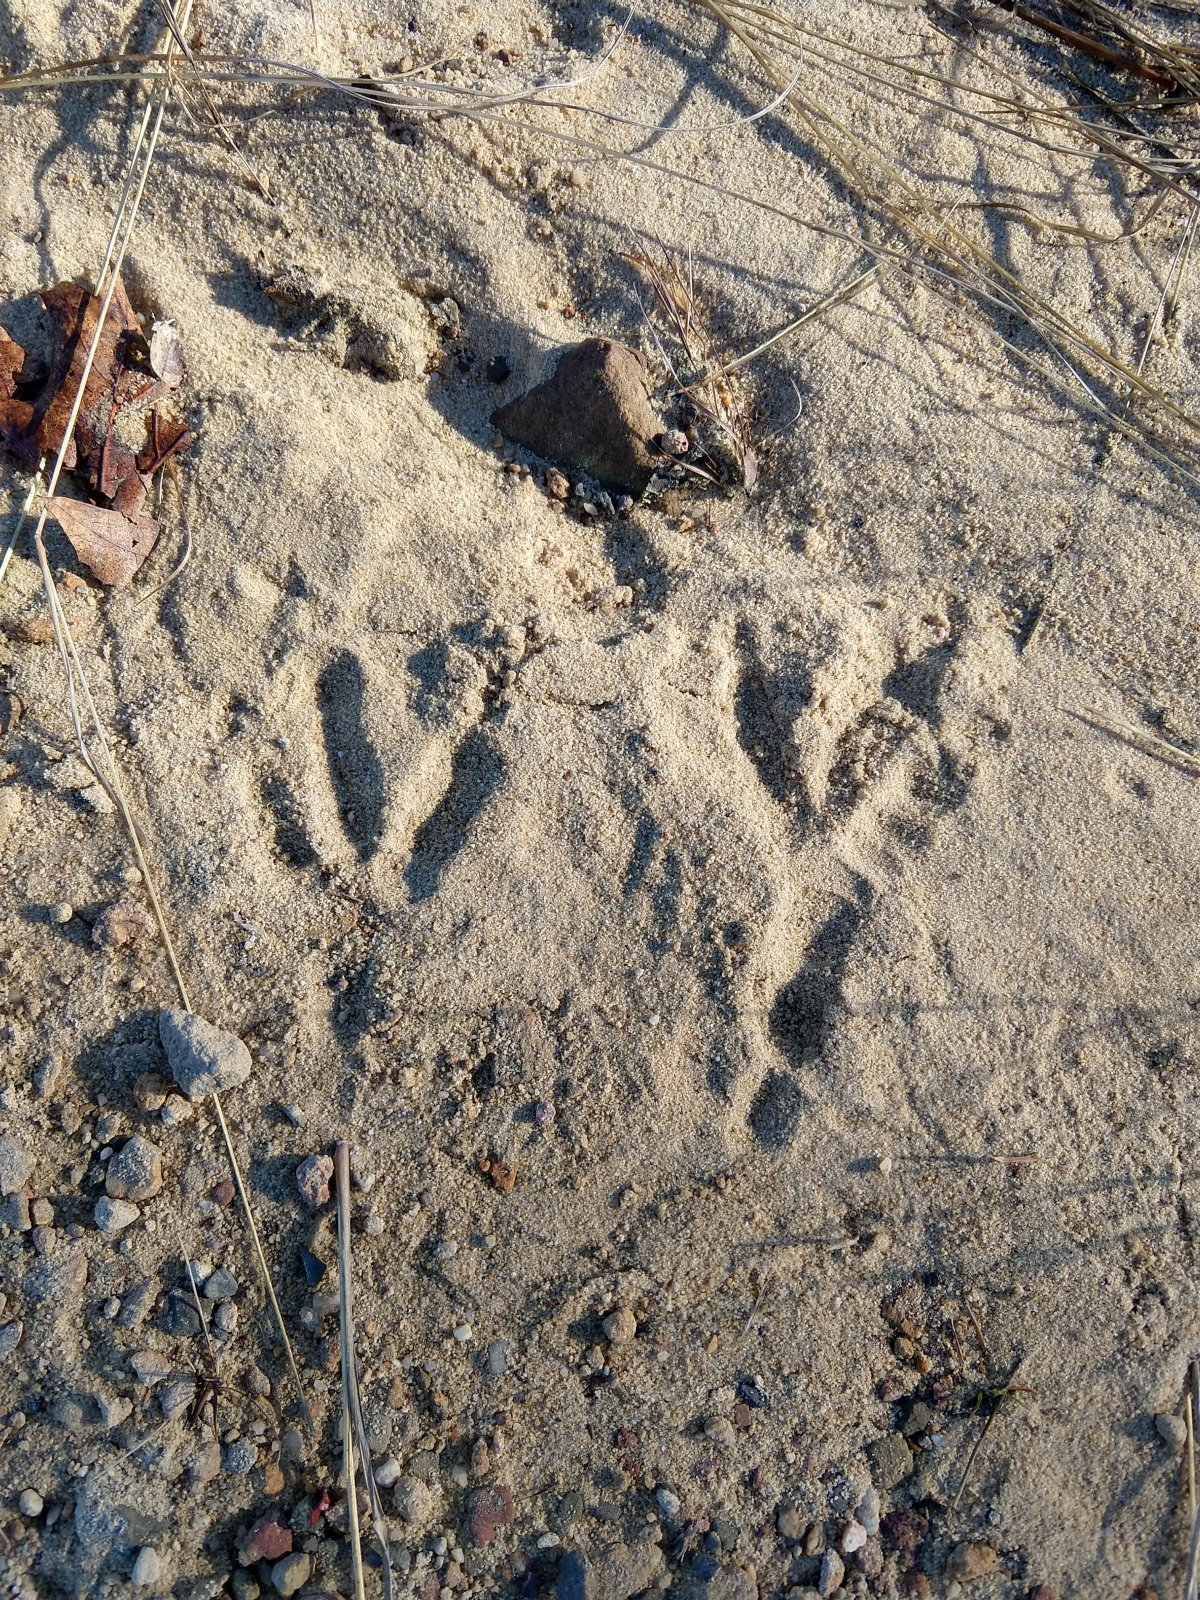 Wild turkey tracks in sand